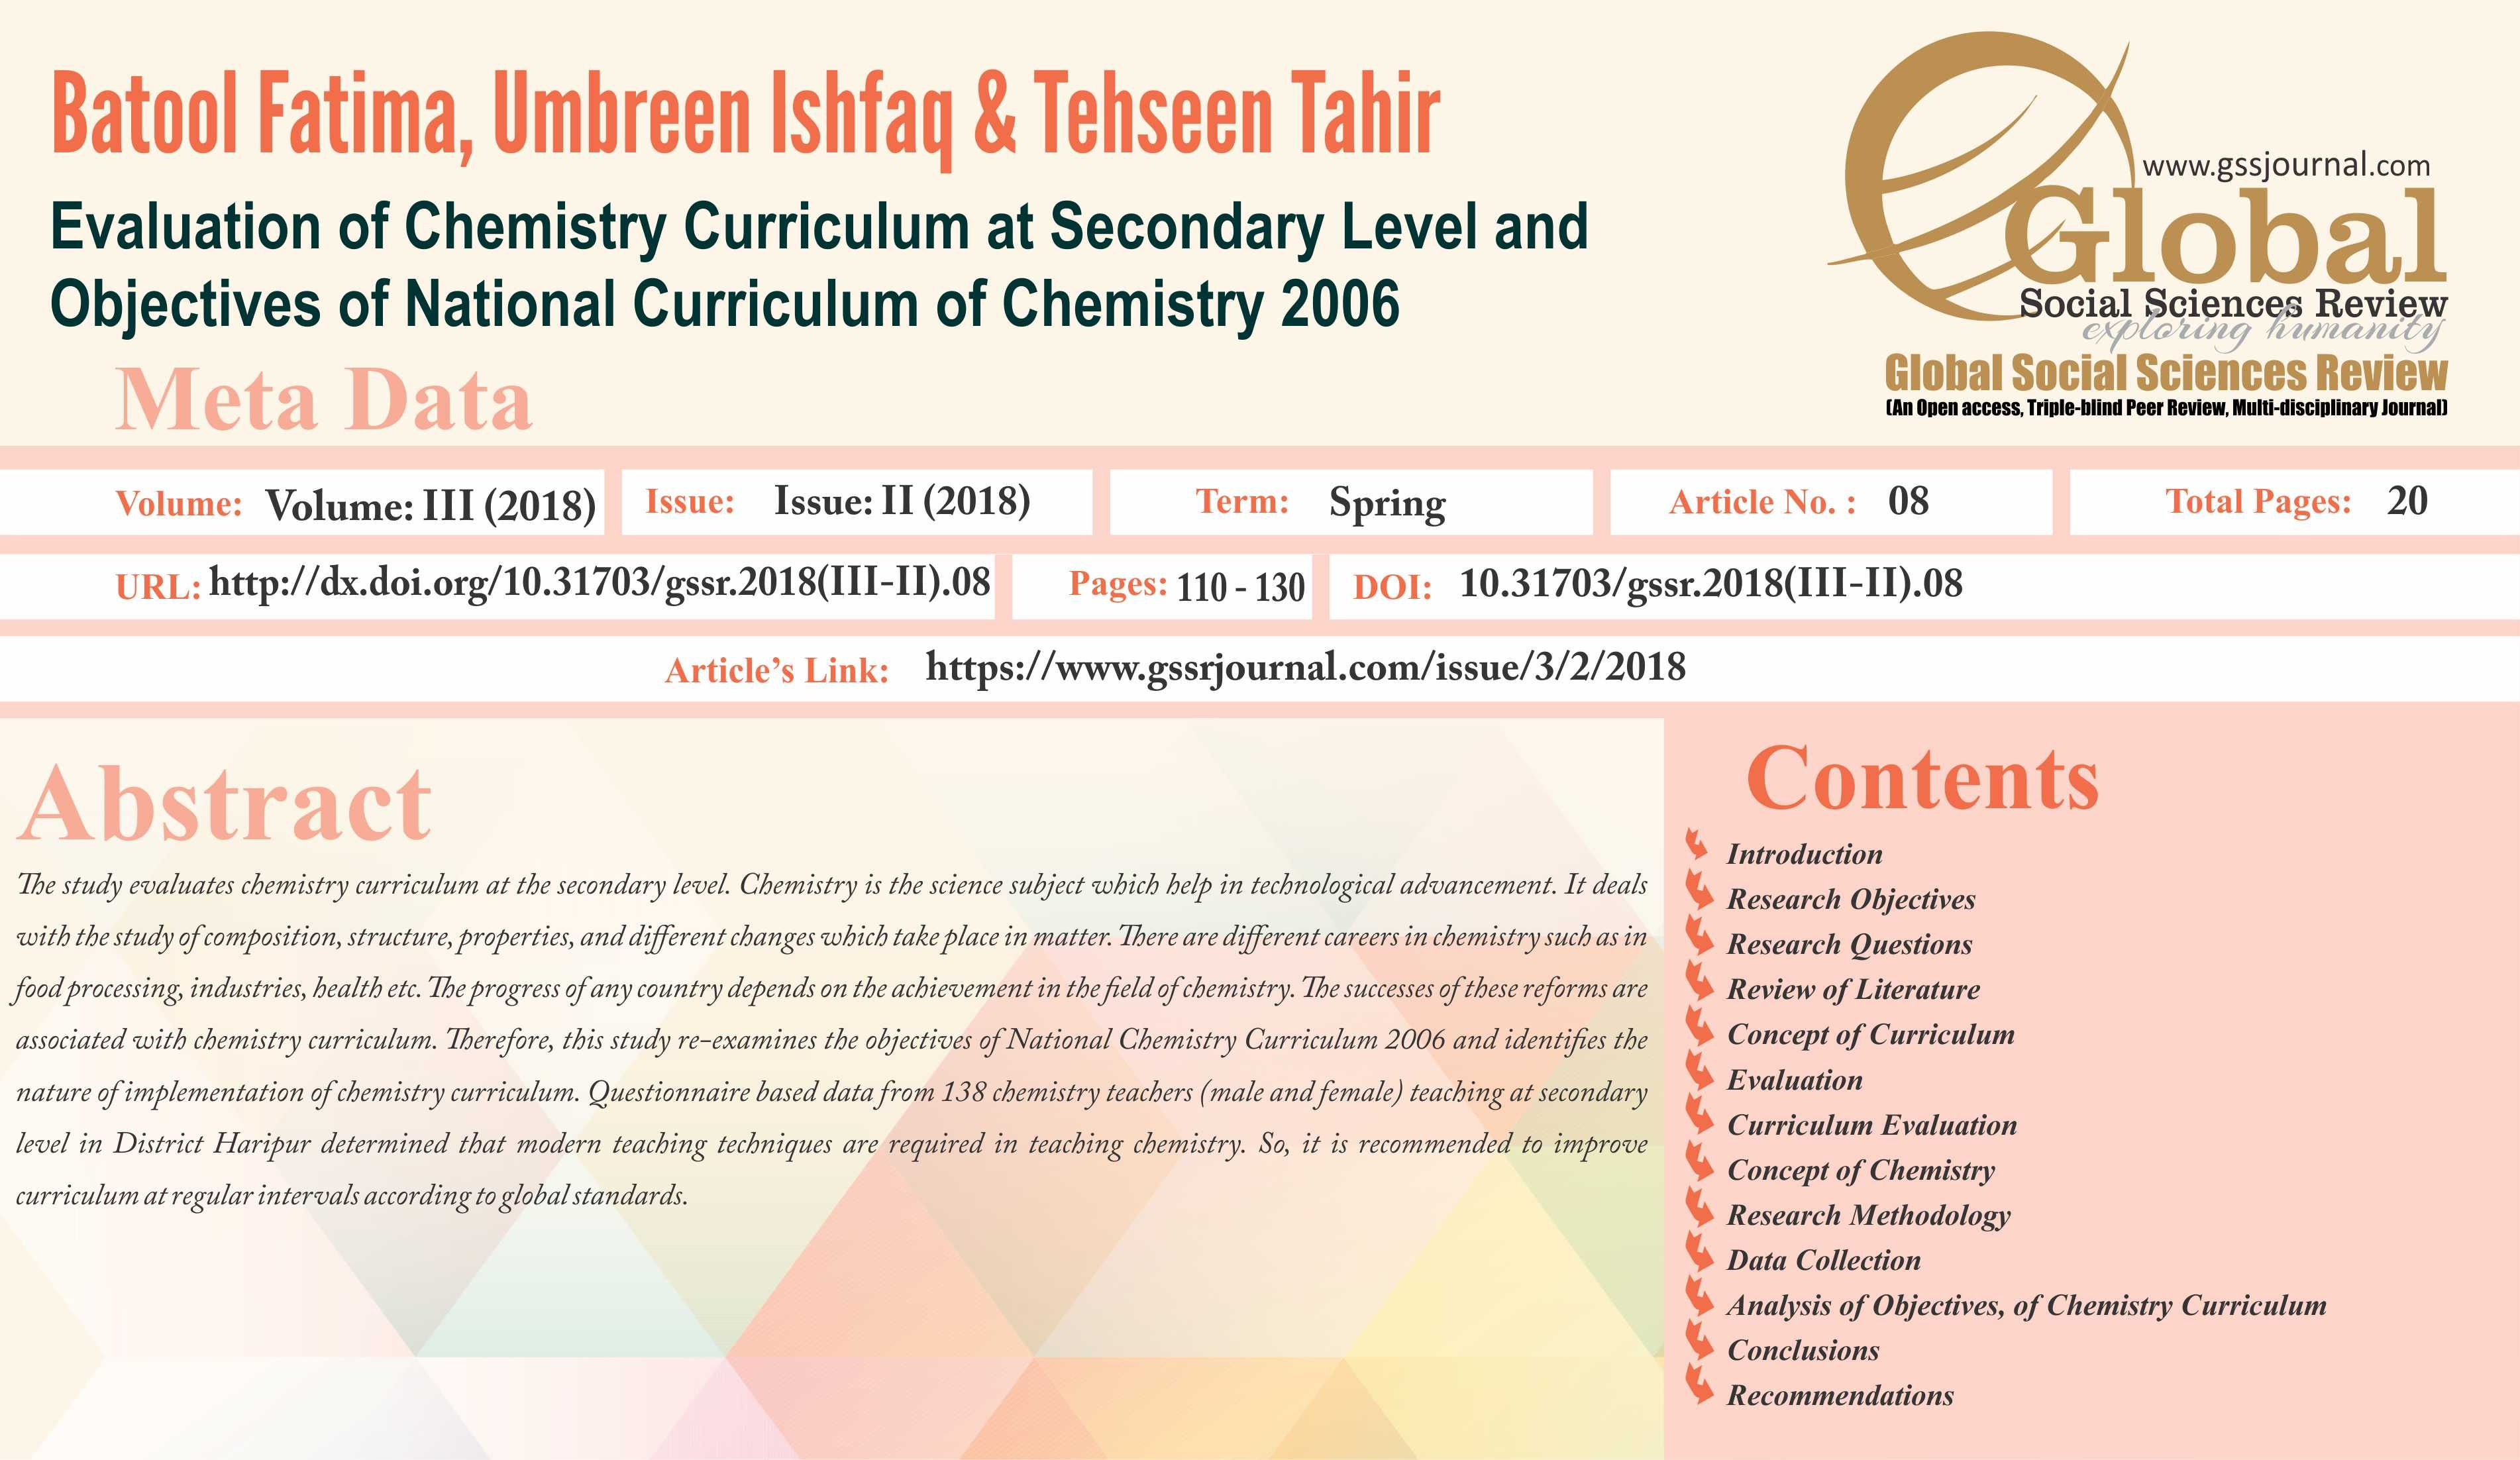 Evaluation of Chemistry Curriculum at Secondary Level and